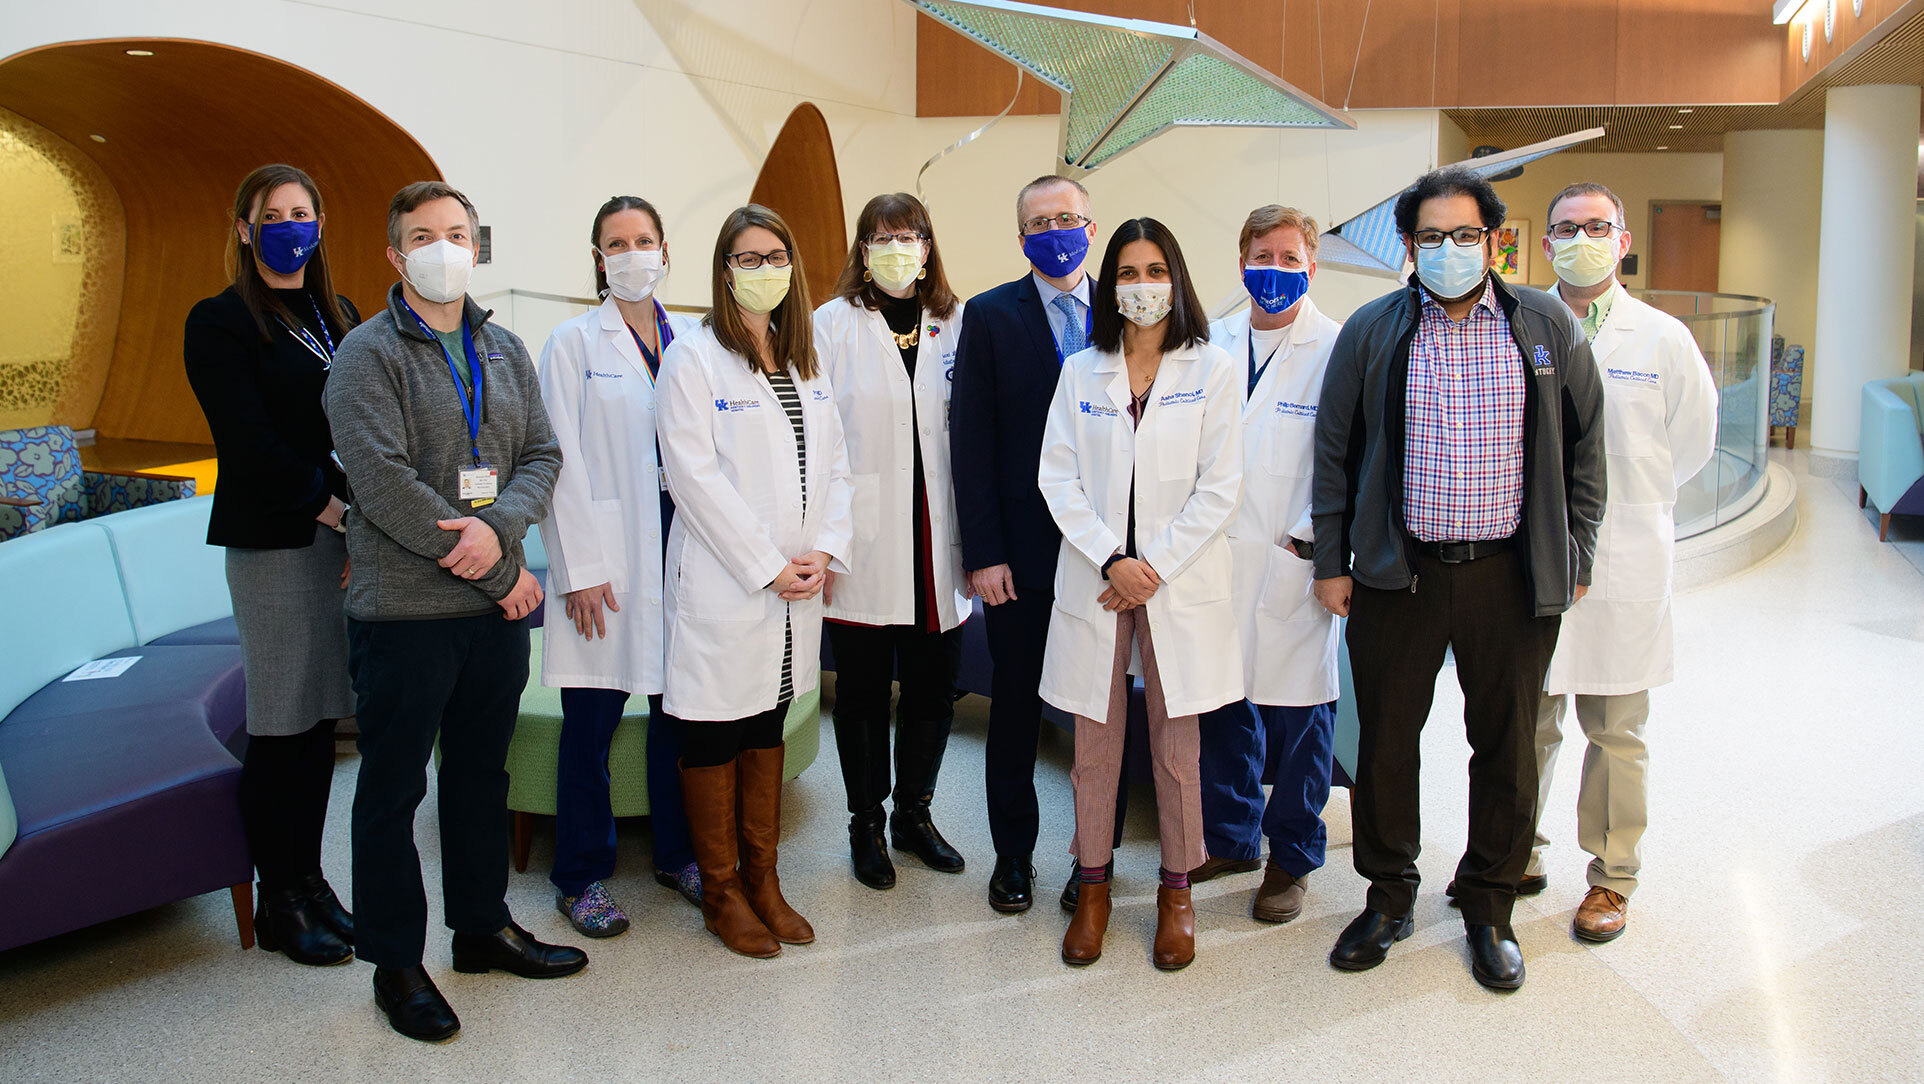 Rory's team of medical workers—men and women—are standing side by side inside the lobby of Kentucky Children's Hospital. They are all wearing facemasks and some are in doctor's coats.